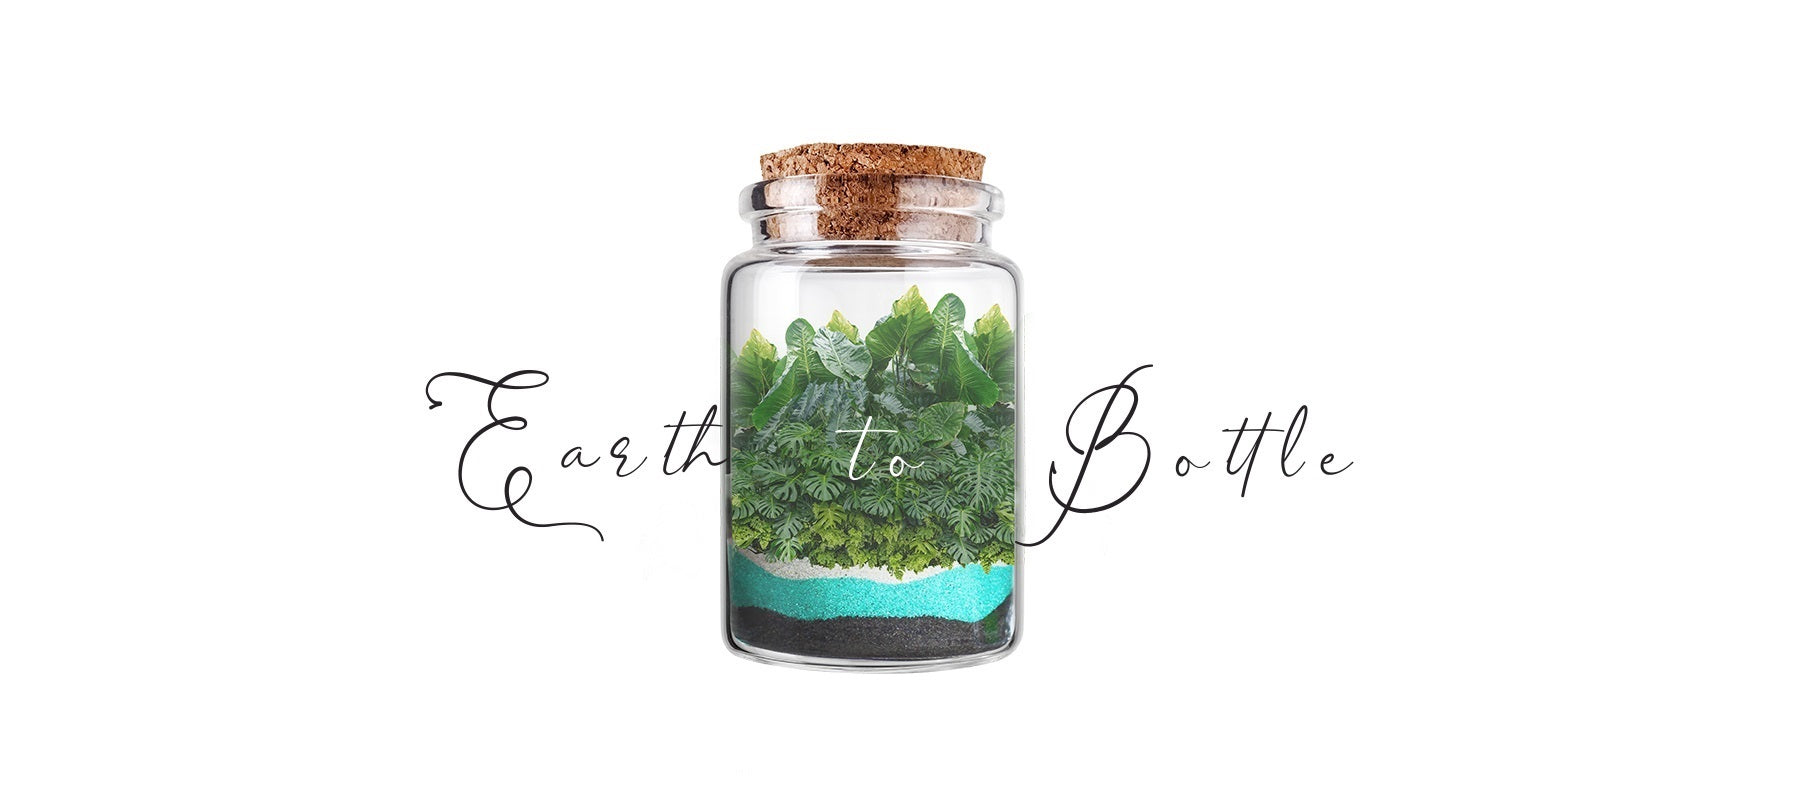 Earth to bottle